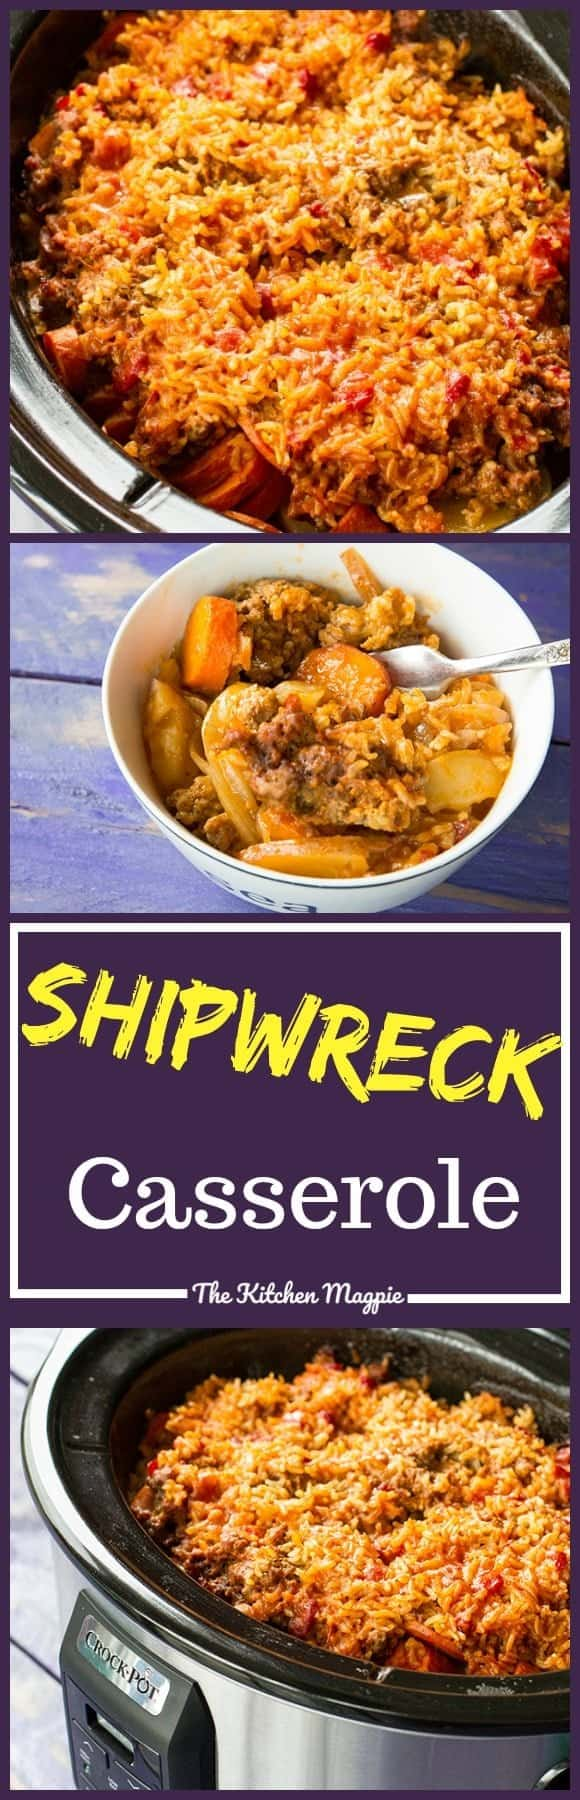 Shipwreck Casserole! This quick and easy classic can also be done in your slow cooker! Recipe from @kitchen magpie. #recipe #crockpot #slowcooker #supper